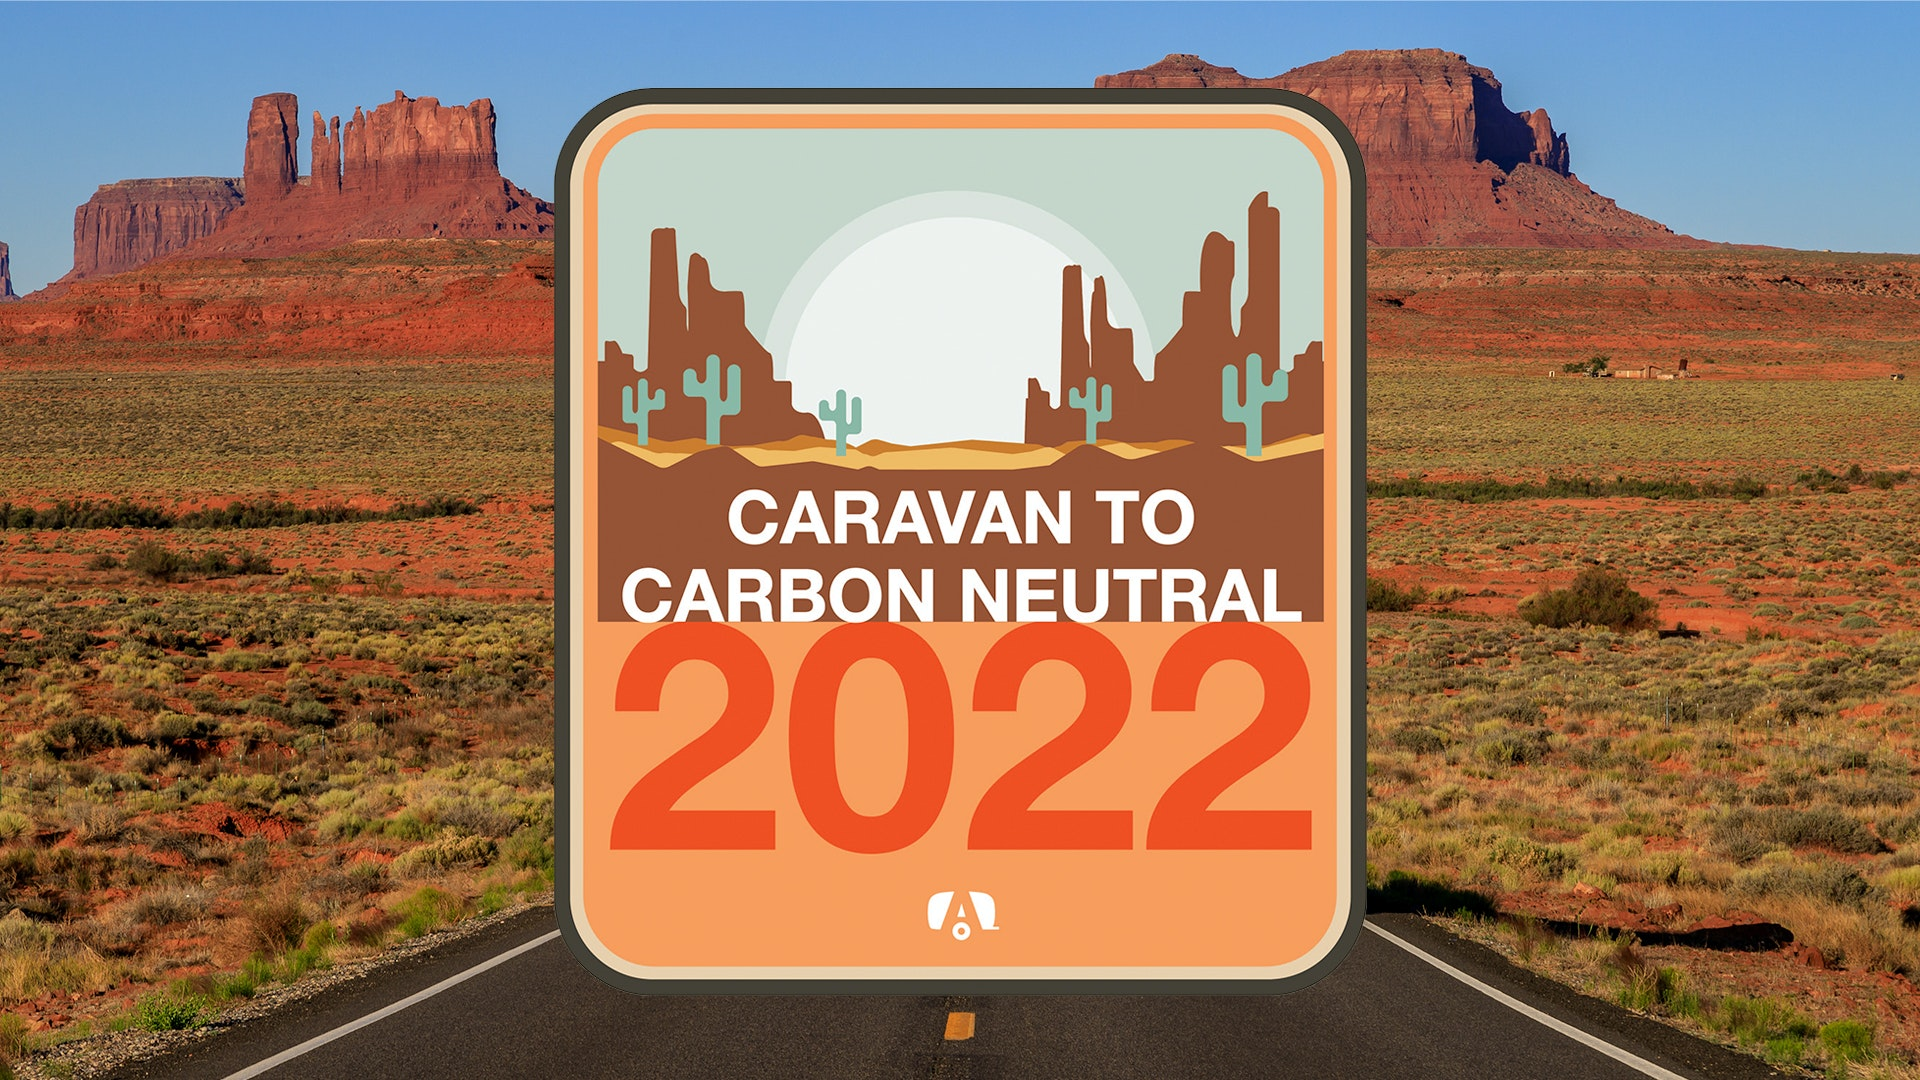 Caravan-to-Carbon-Neutral-2022